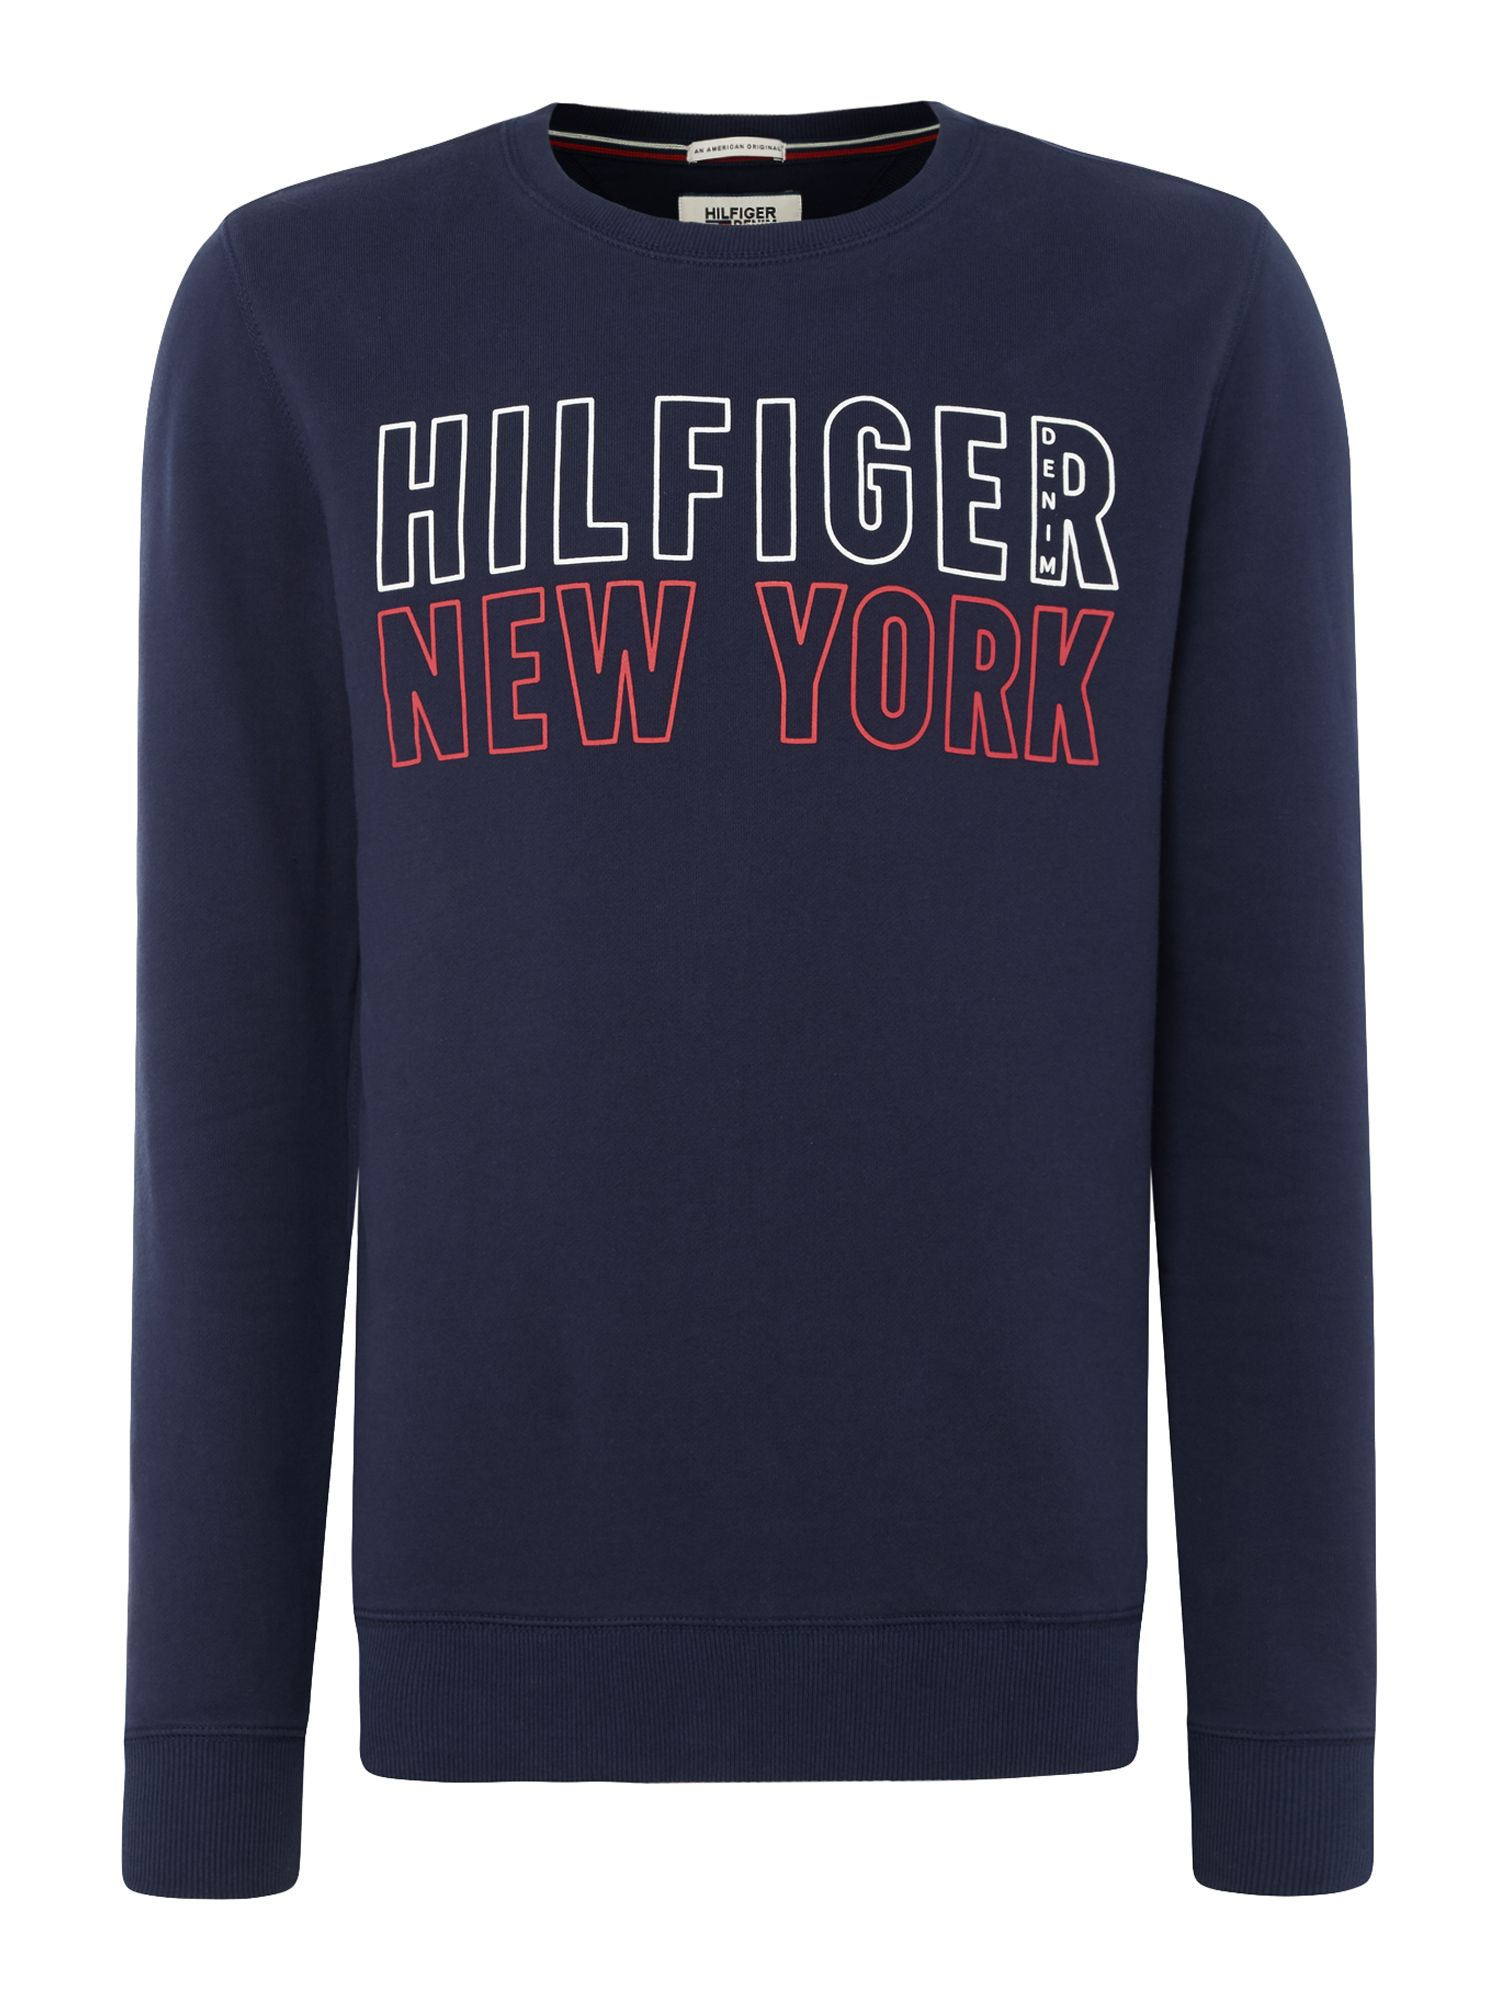 Men's Tommy Hilfiger Basic Hilfiger Sweatshirt, Blue